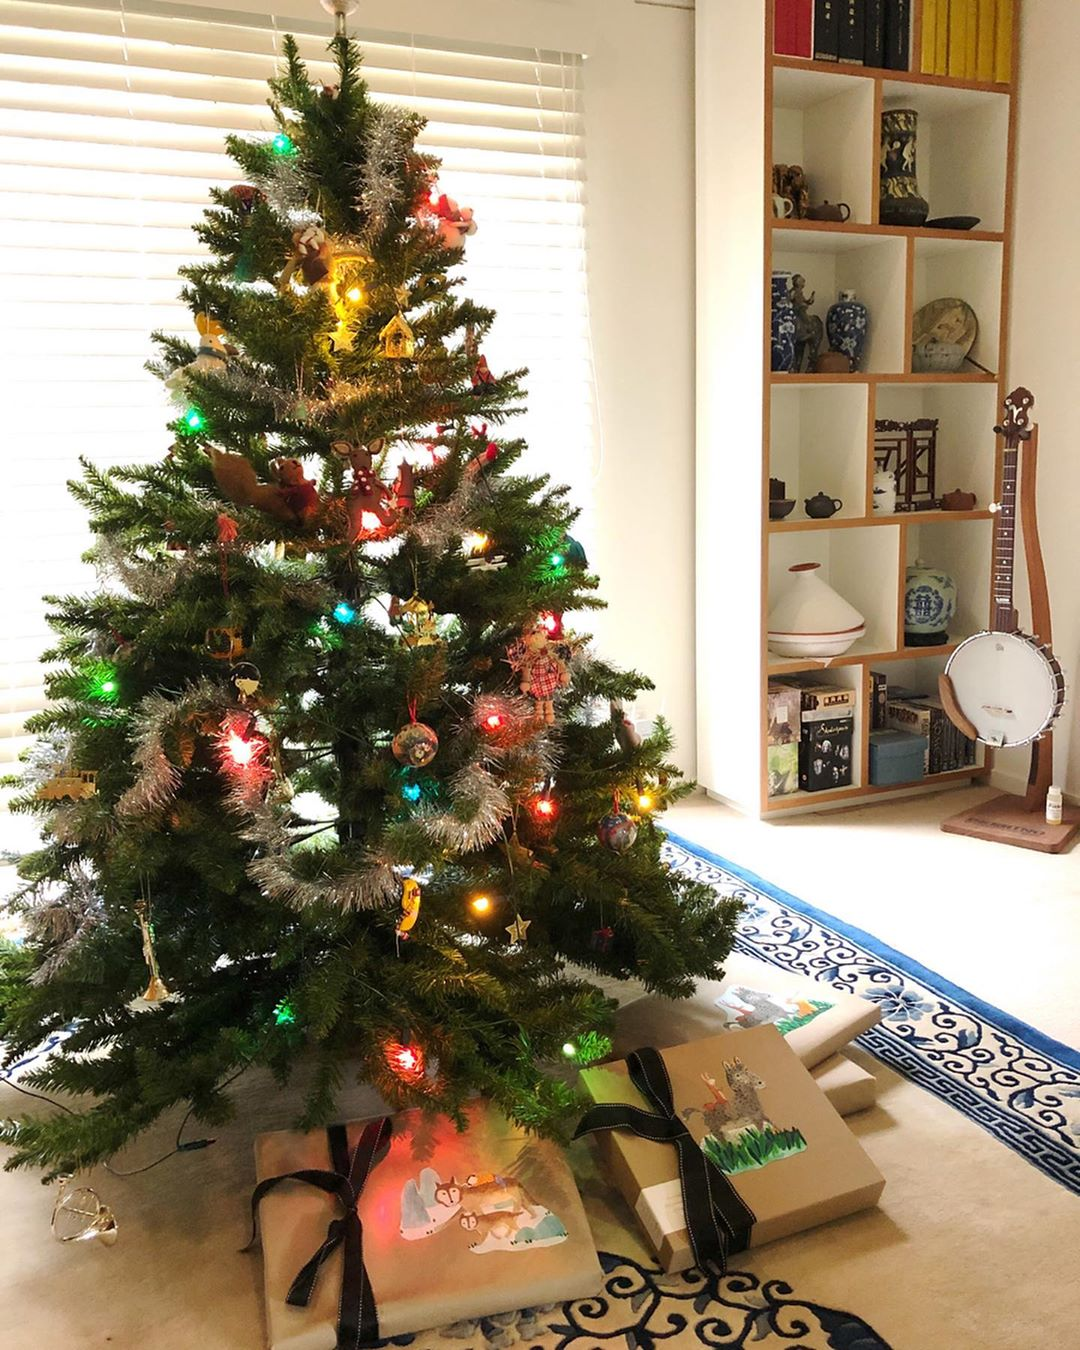 Christmas Tree for Christmas Home Decor (16)